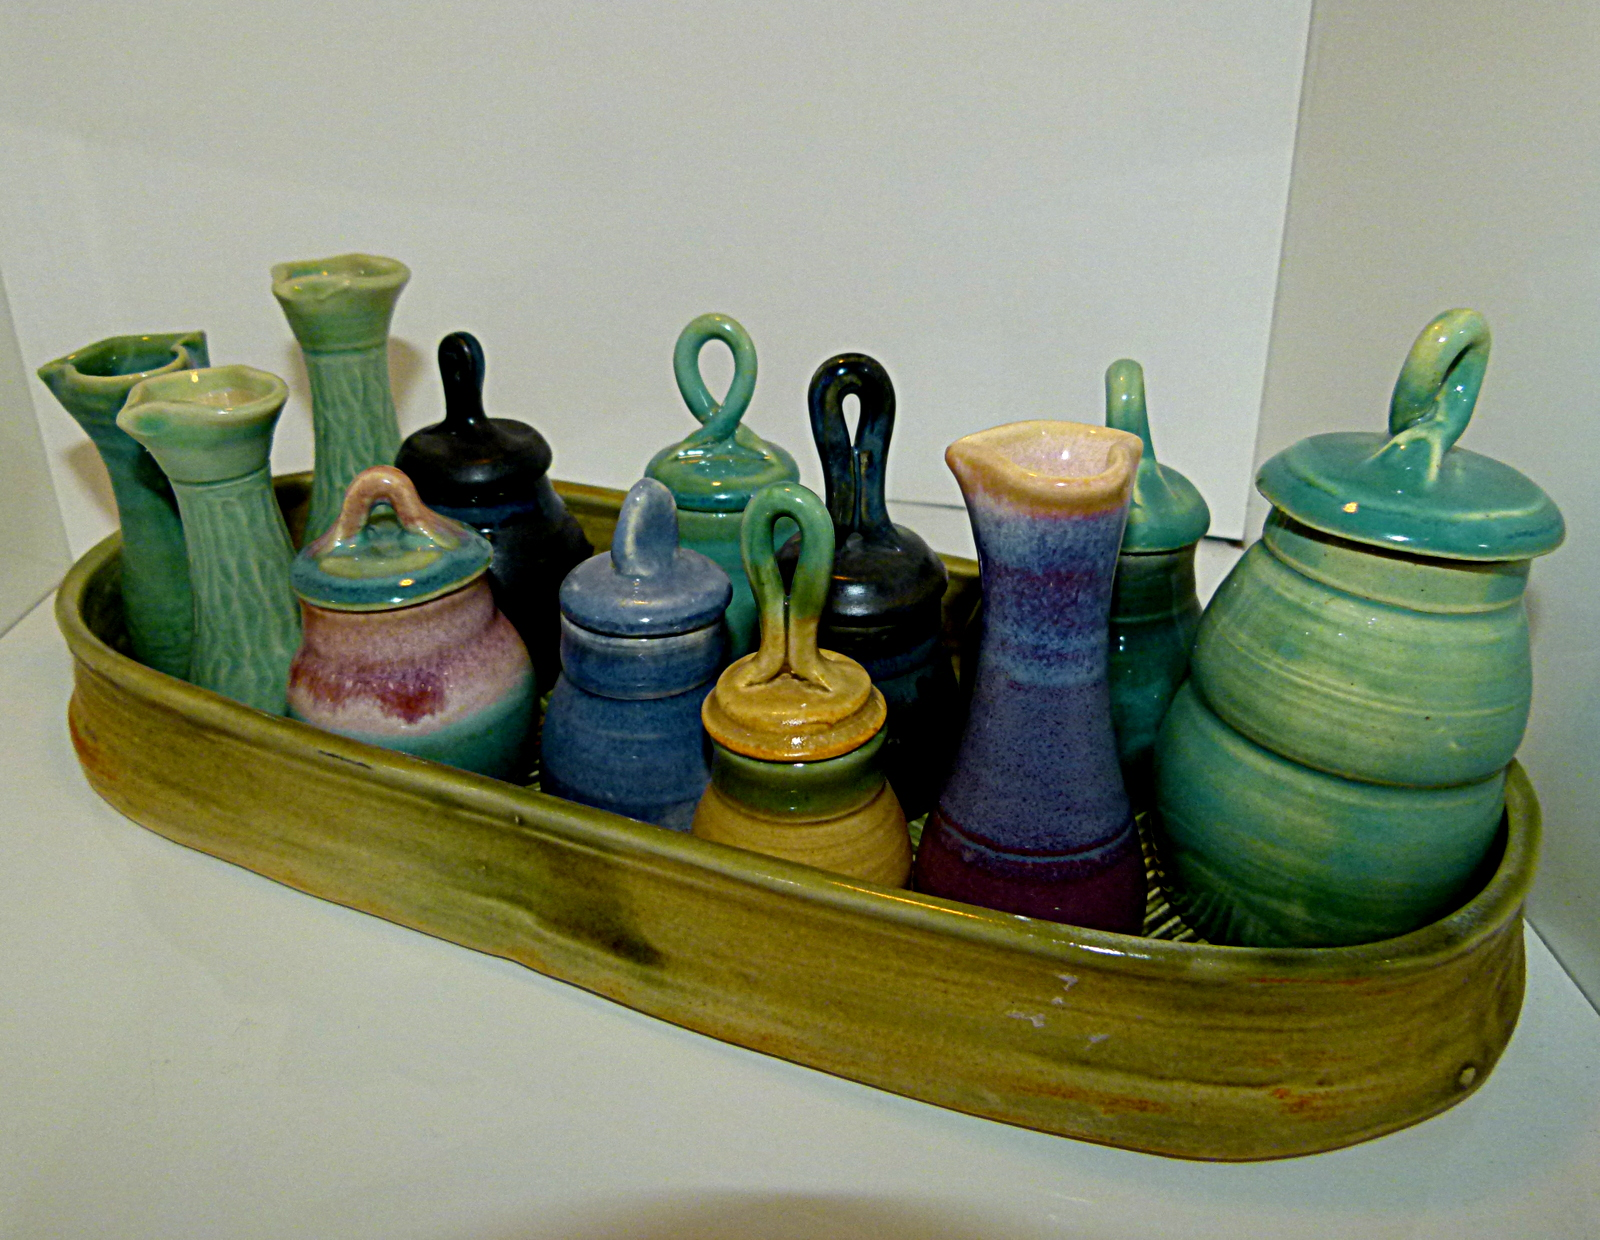 Pottery by Sarah Wech